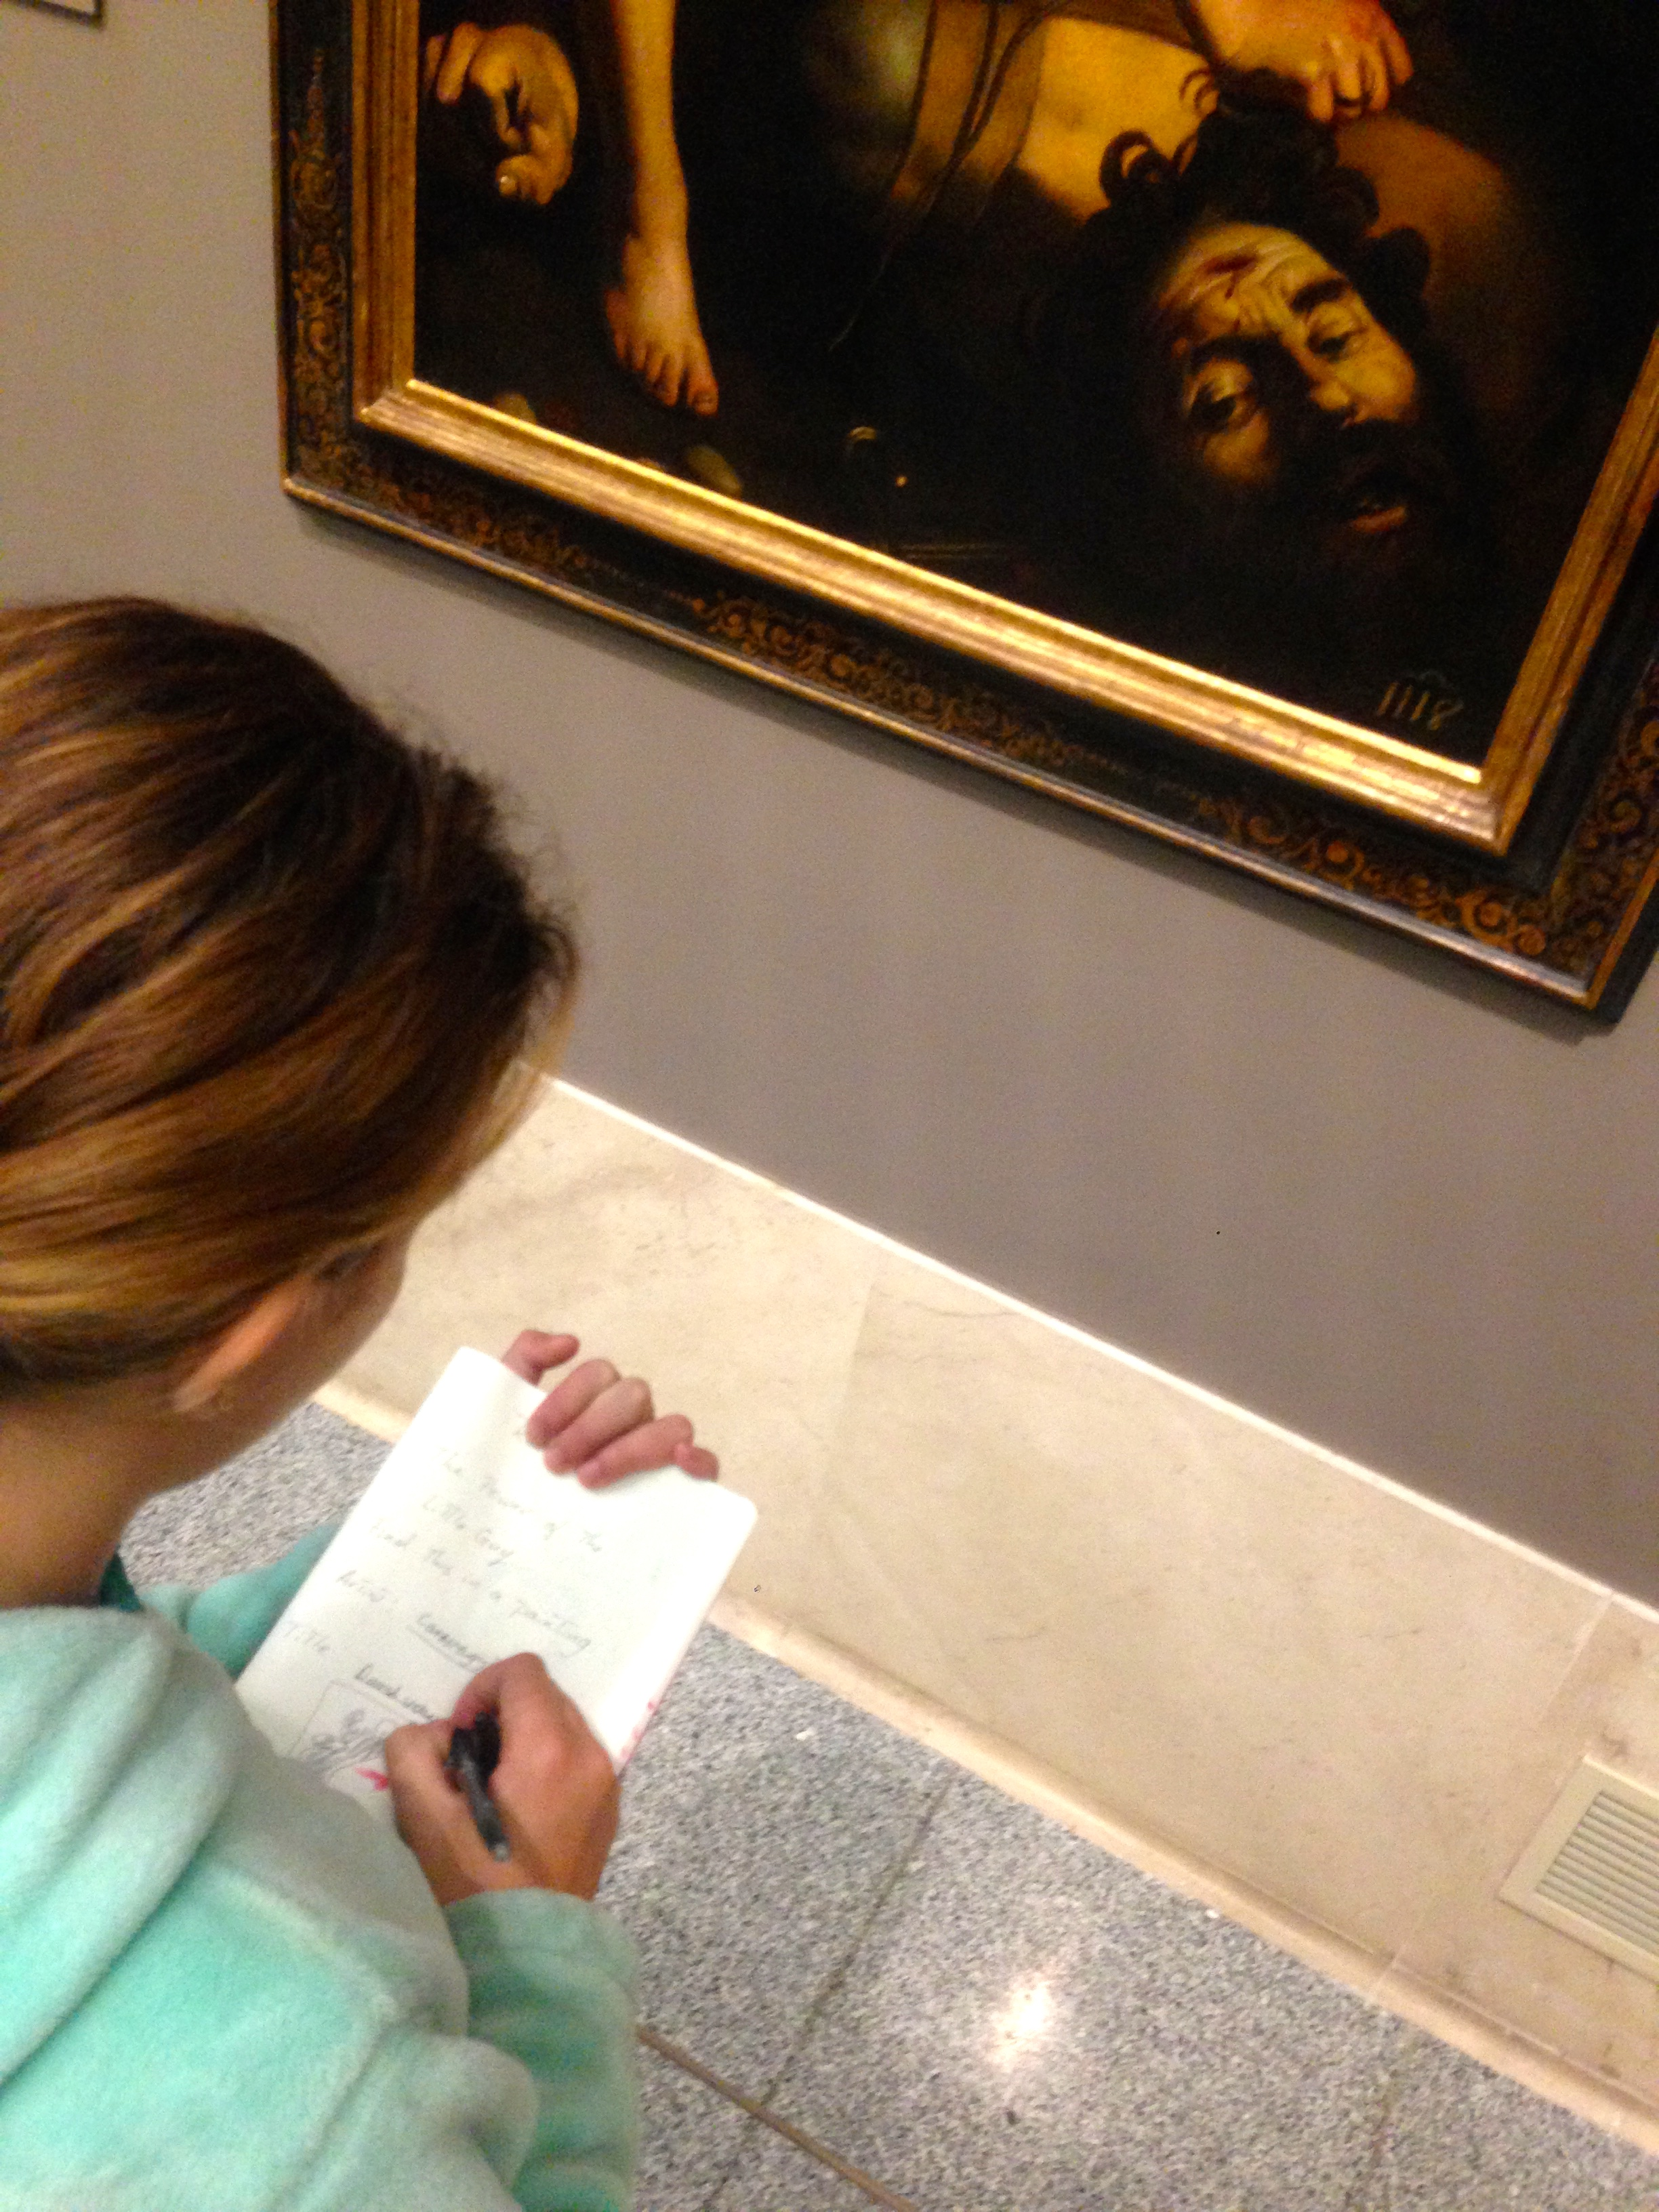 A Treasure Hunt at the Prado